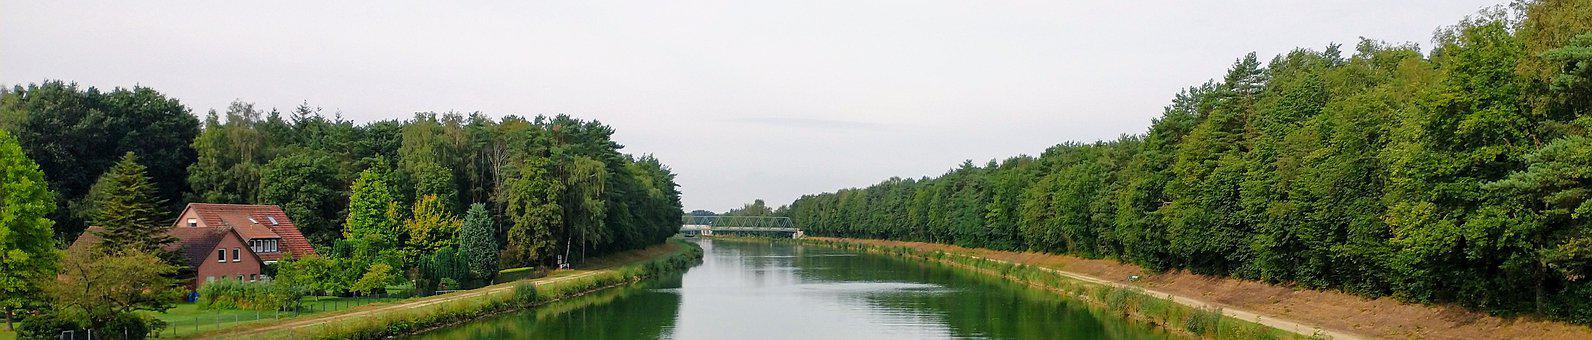 Channel, River, Trees, Bank, House, Lower Saxony